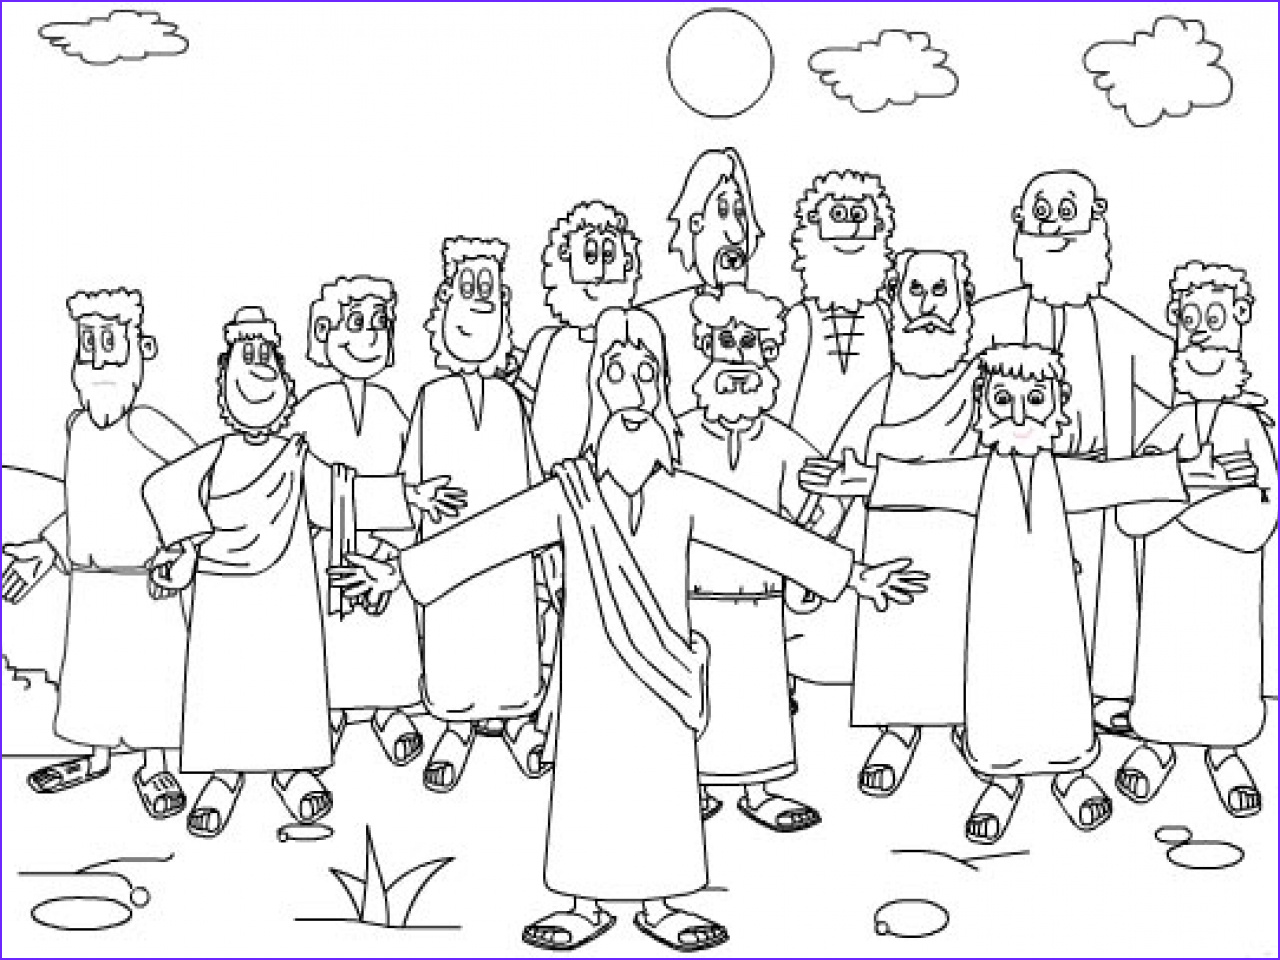 12 Disciples Coloring Page Cool Images Twelve Disciples Coloring Page Coloring Home